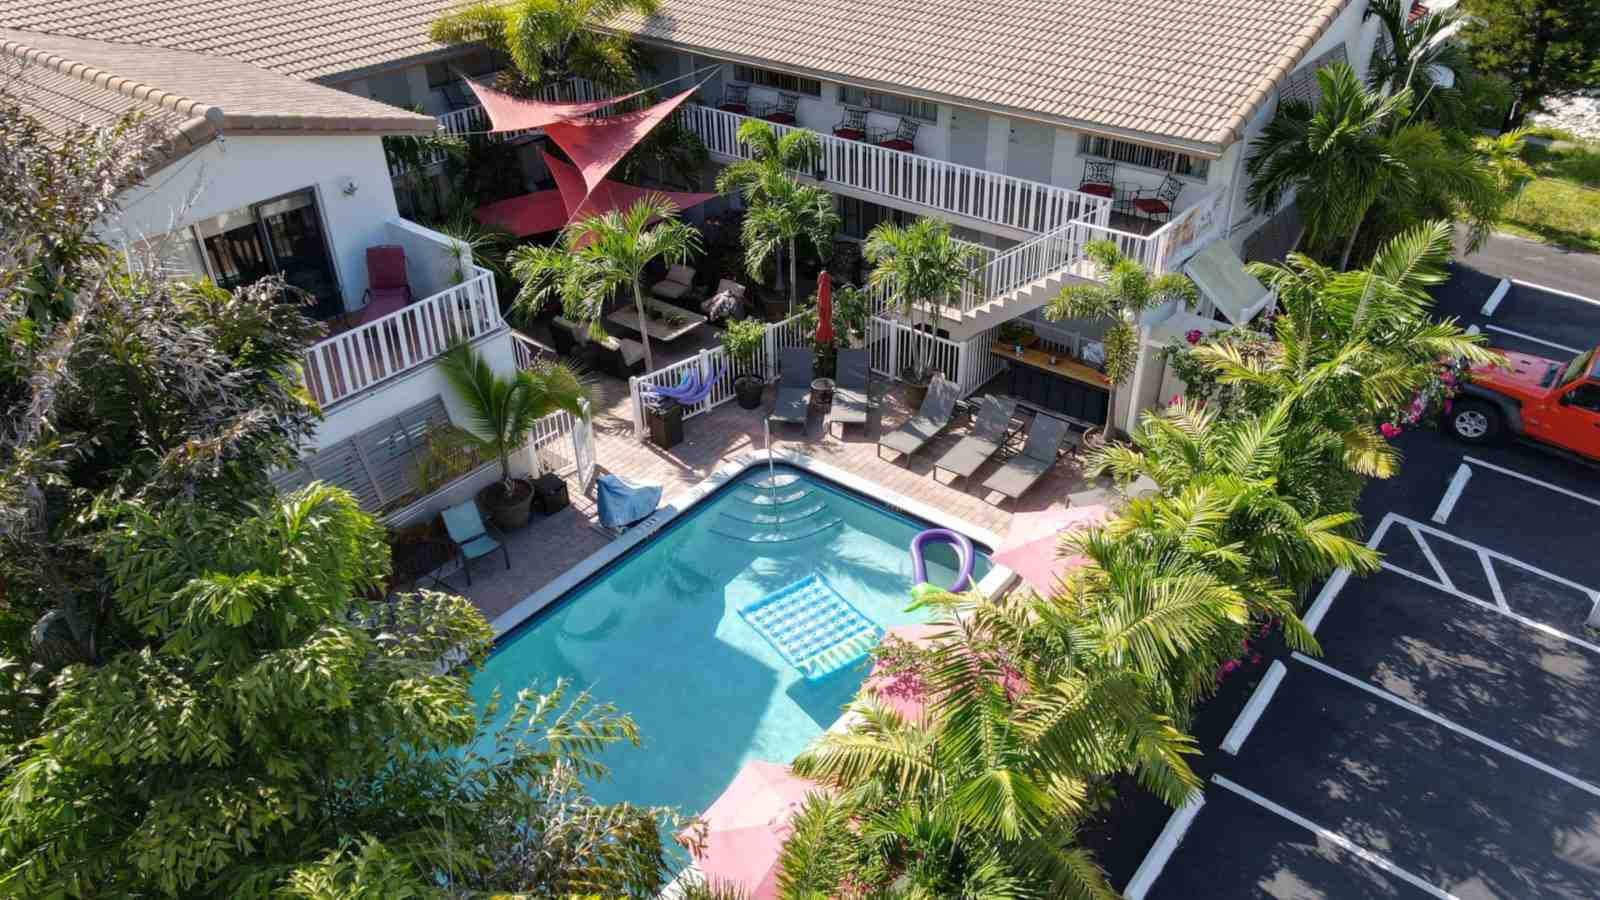 The Big Coconut Guesthouse is a fabulous gay resort in Fort Lauderdale right by the beach